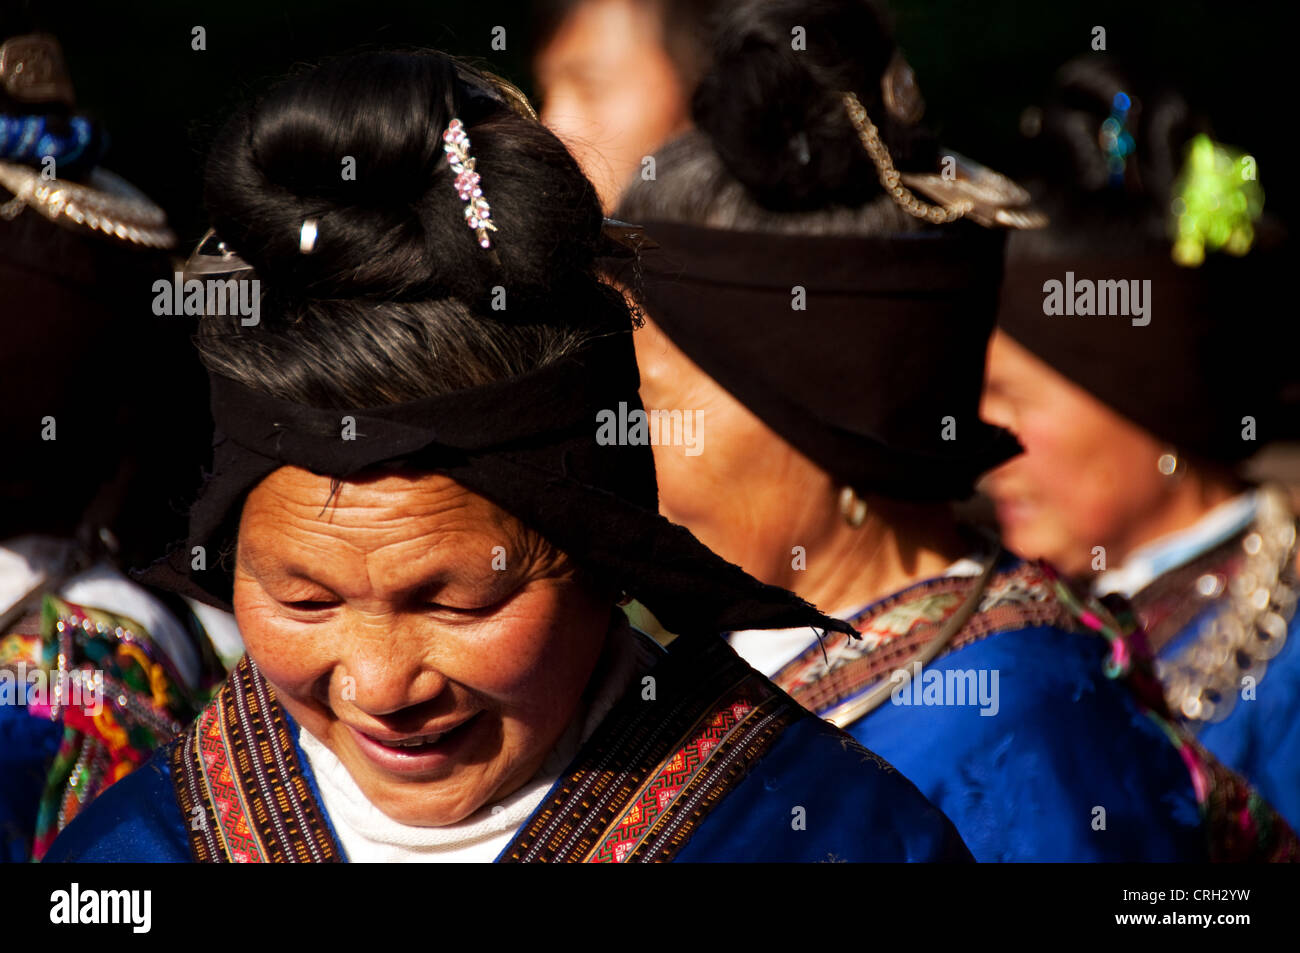 Miao elderly woman while performing traditional songs, Xijiang Miao village, China - Stock Image